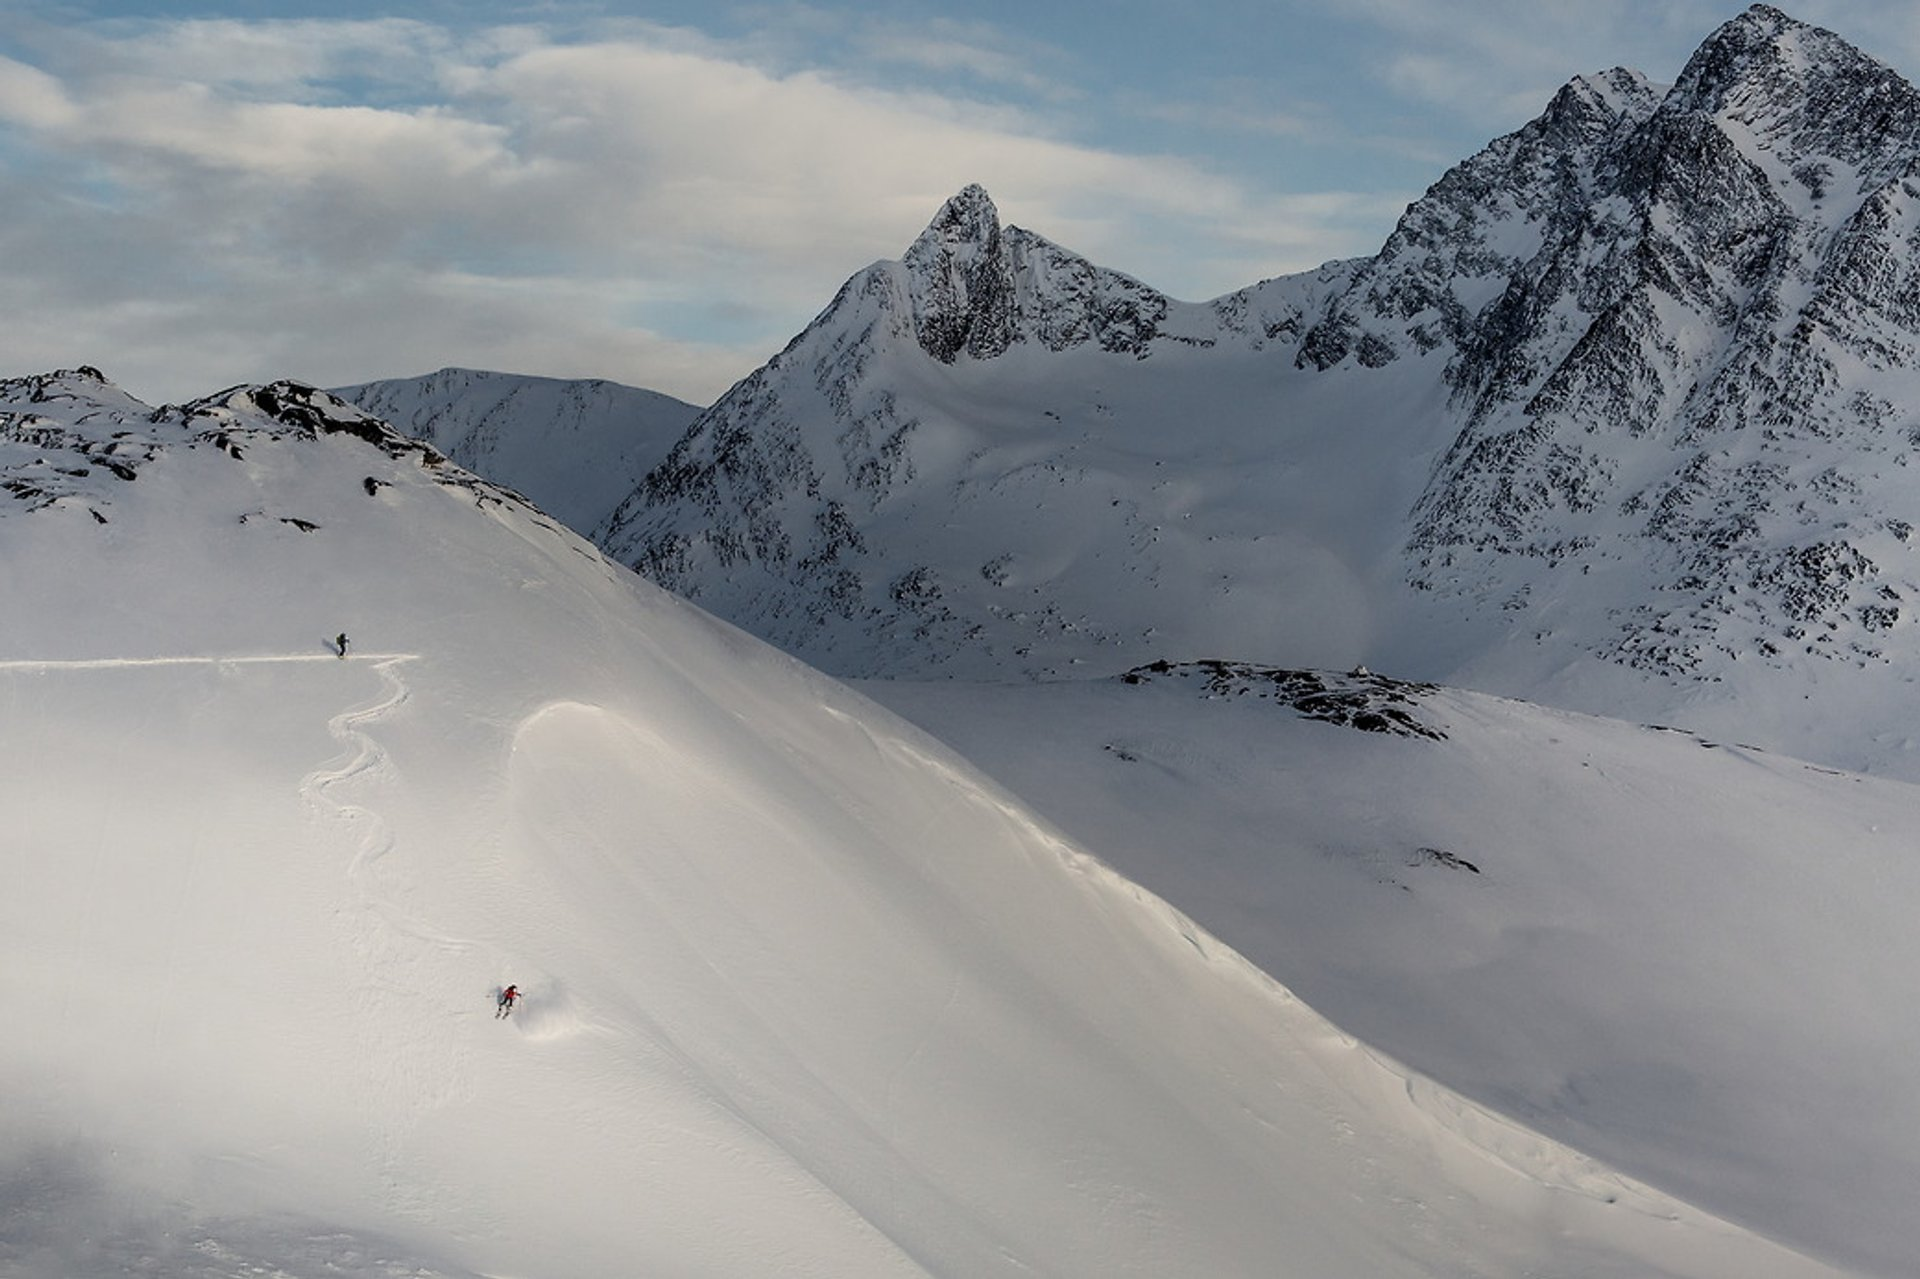 A skier carving a steep line near Kuummiut in East Greenland 2020